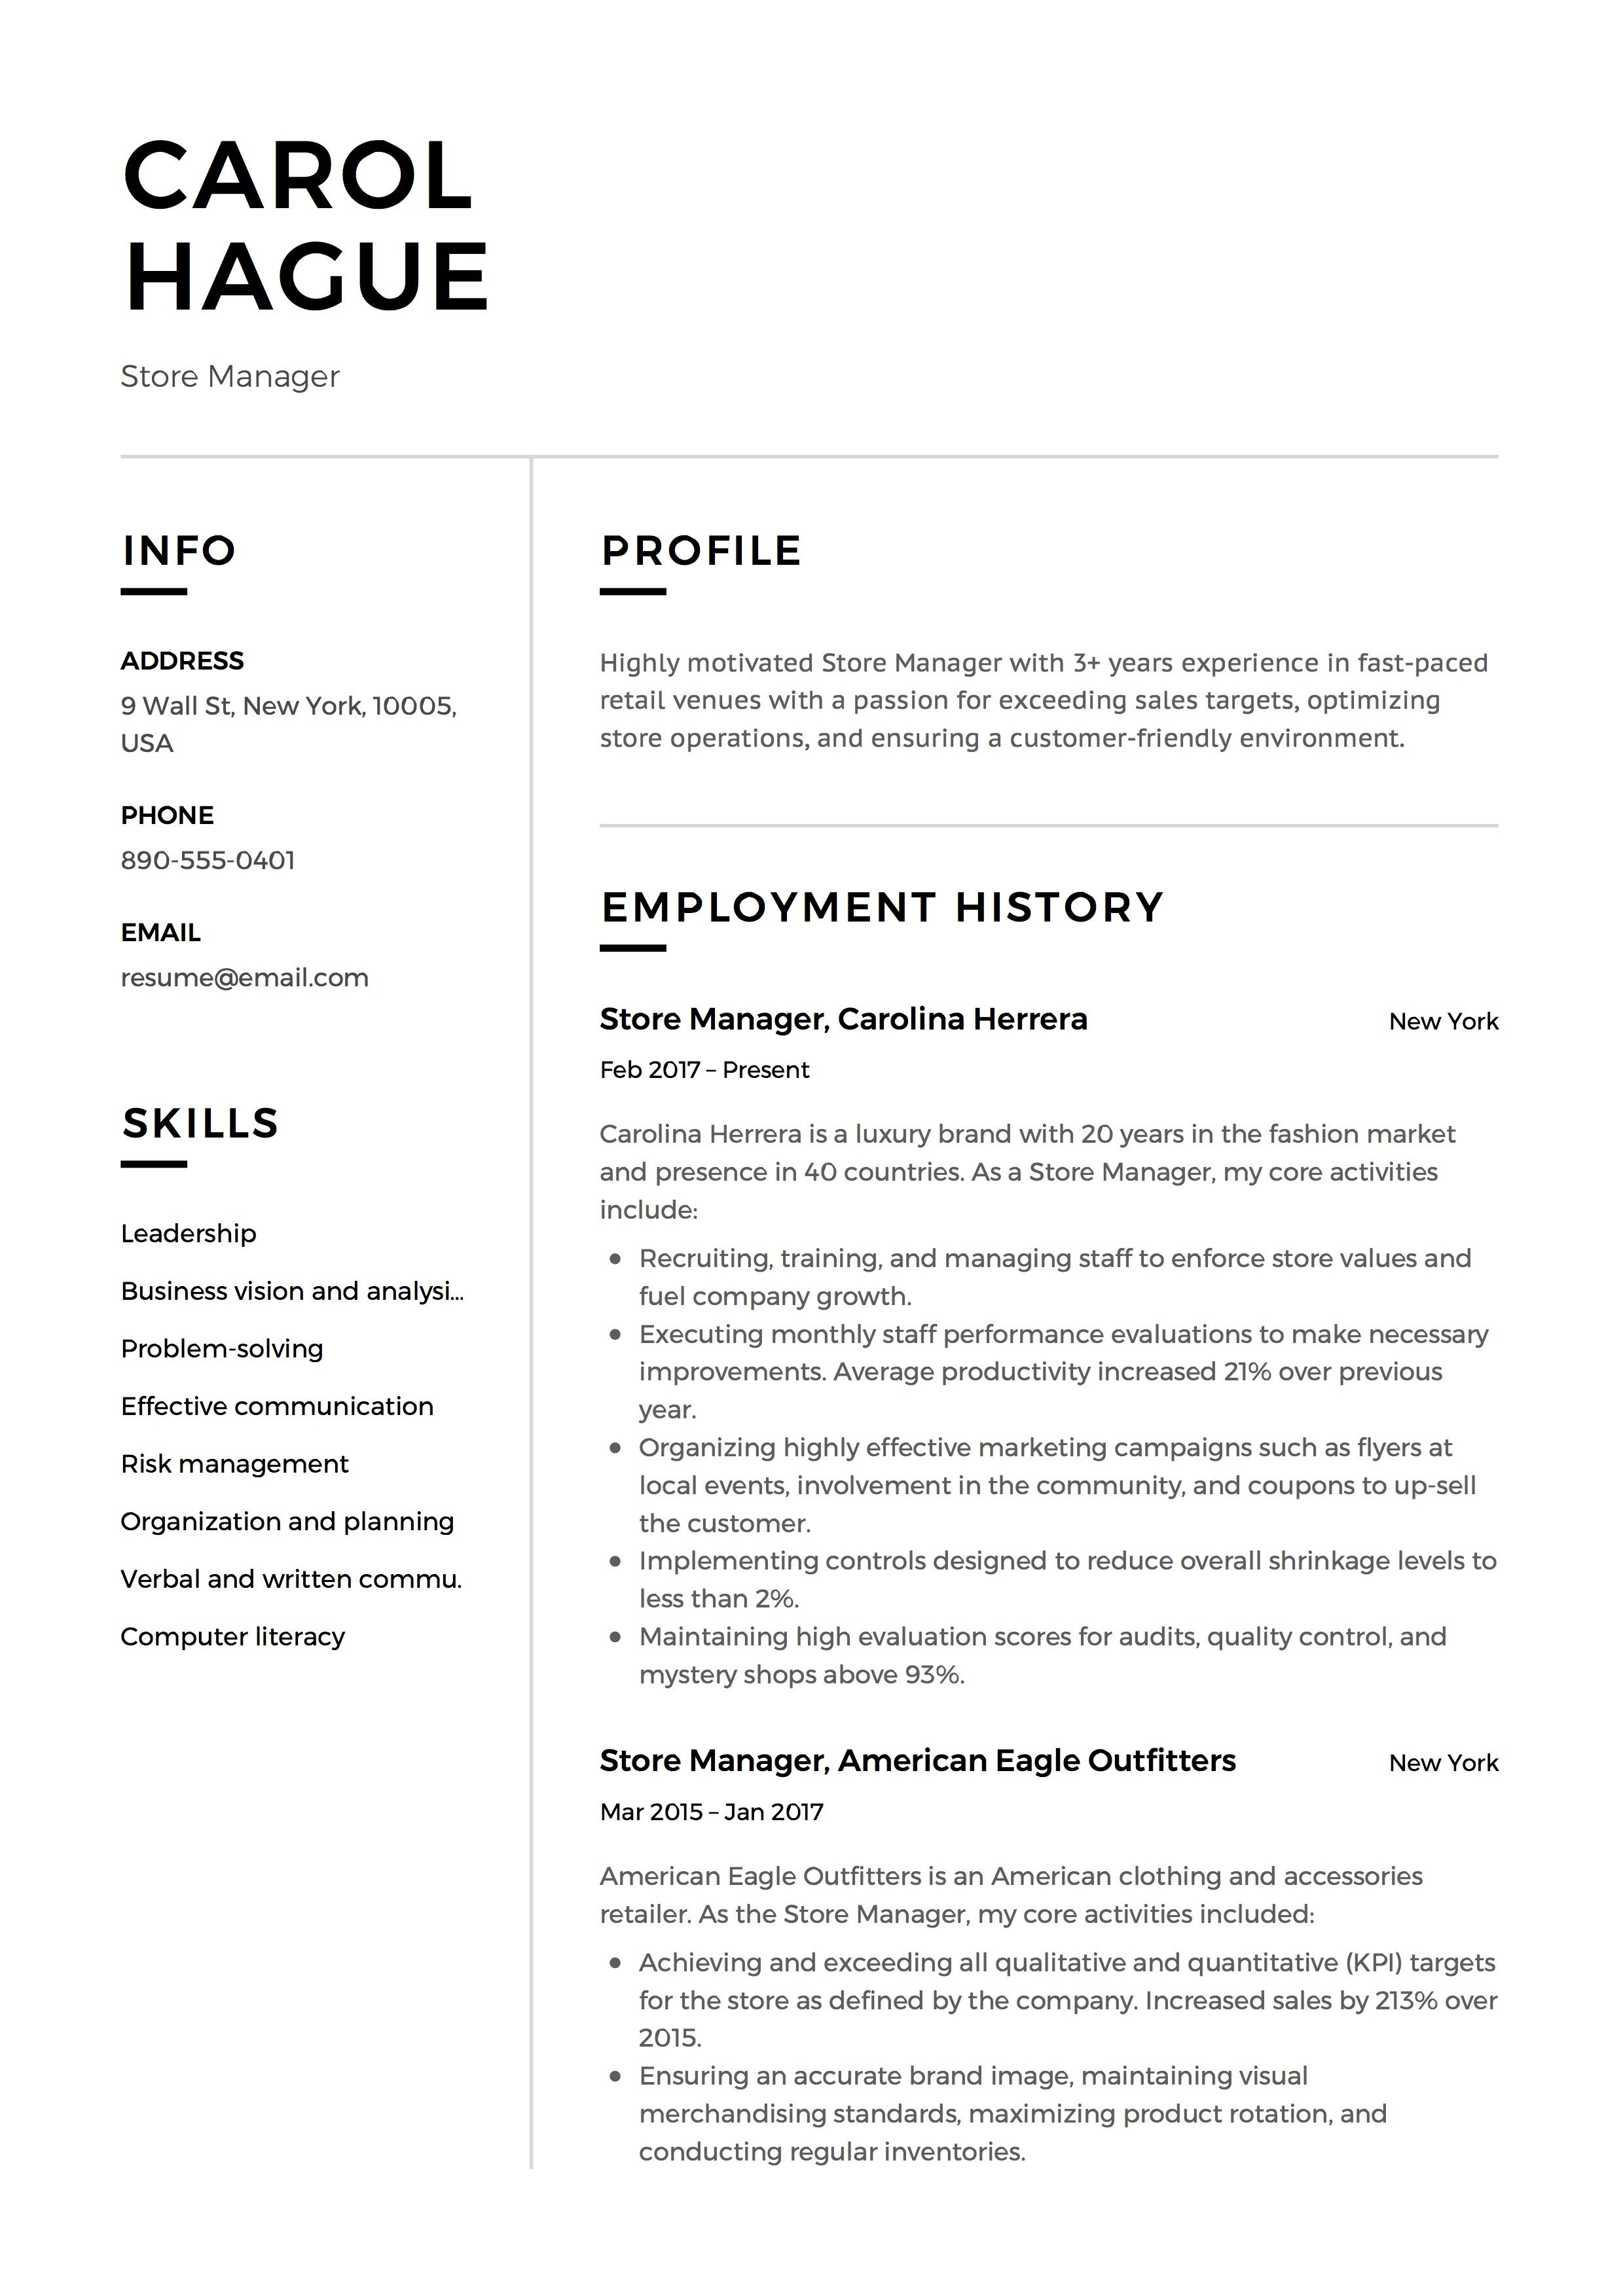 Store Manager Resume Sample Template Example Cv Formal Design Manager Resume Resume Guide Resume Examples